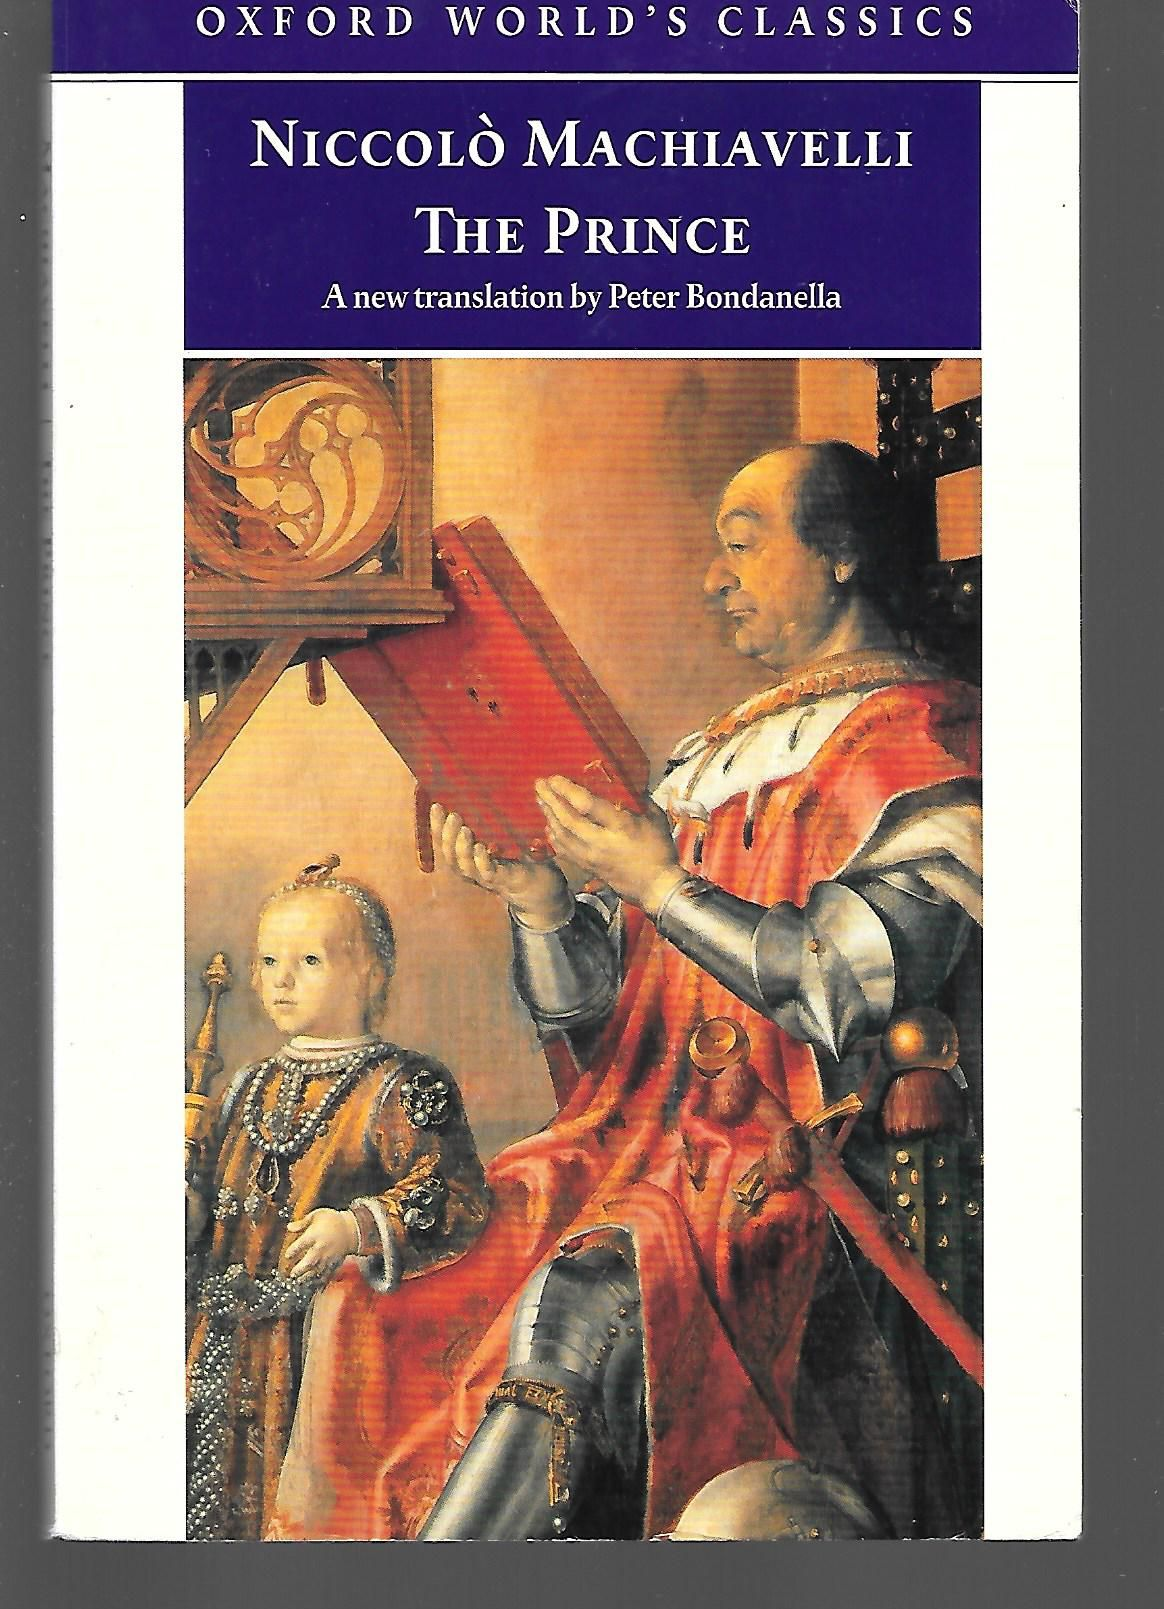 a plot summary of niccolo machiavellis book the prince Summary all principalities are governed either by a single ruler assisted by his   machiavelli discusses this theme in detail throughout the book, culminating in.